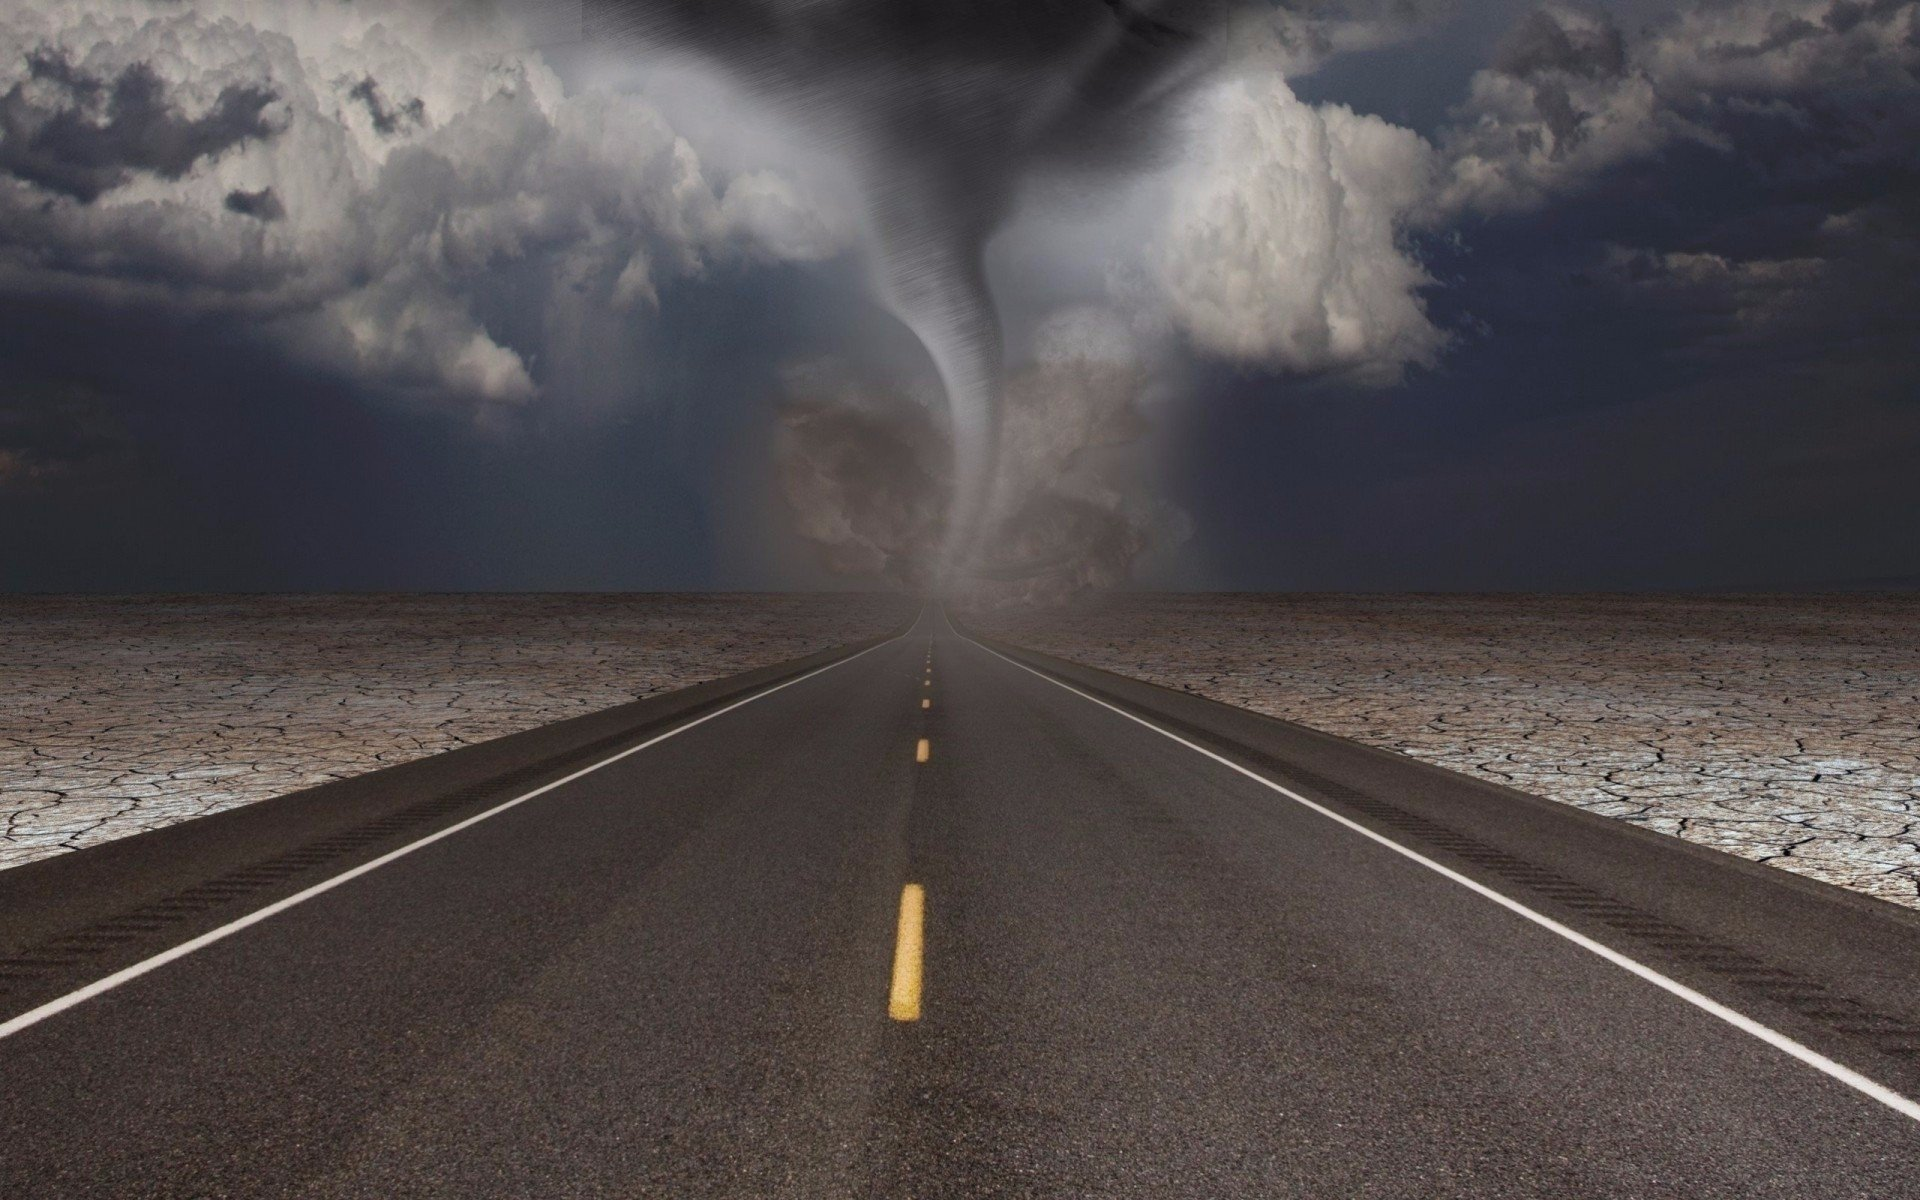 Driving toward tornado hd wallpaper background image 1920x1200 id 786056 wallpaper abyss - Tornado images hd ...